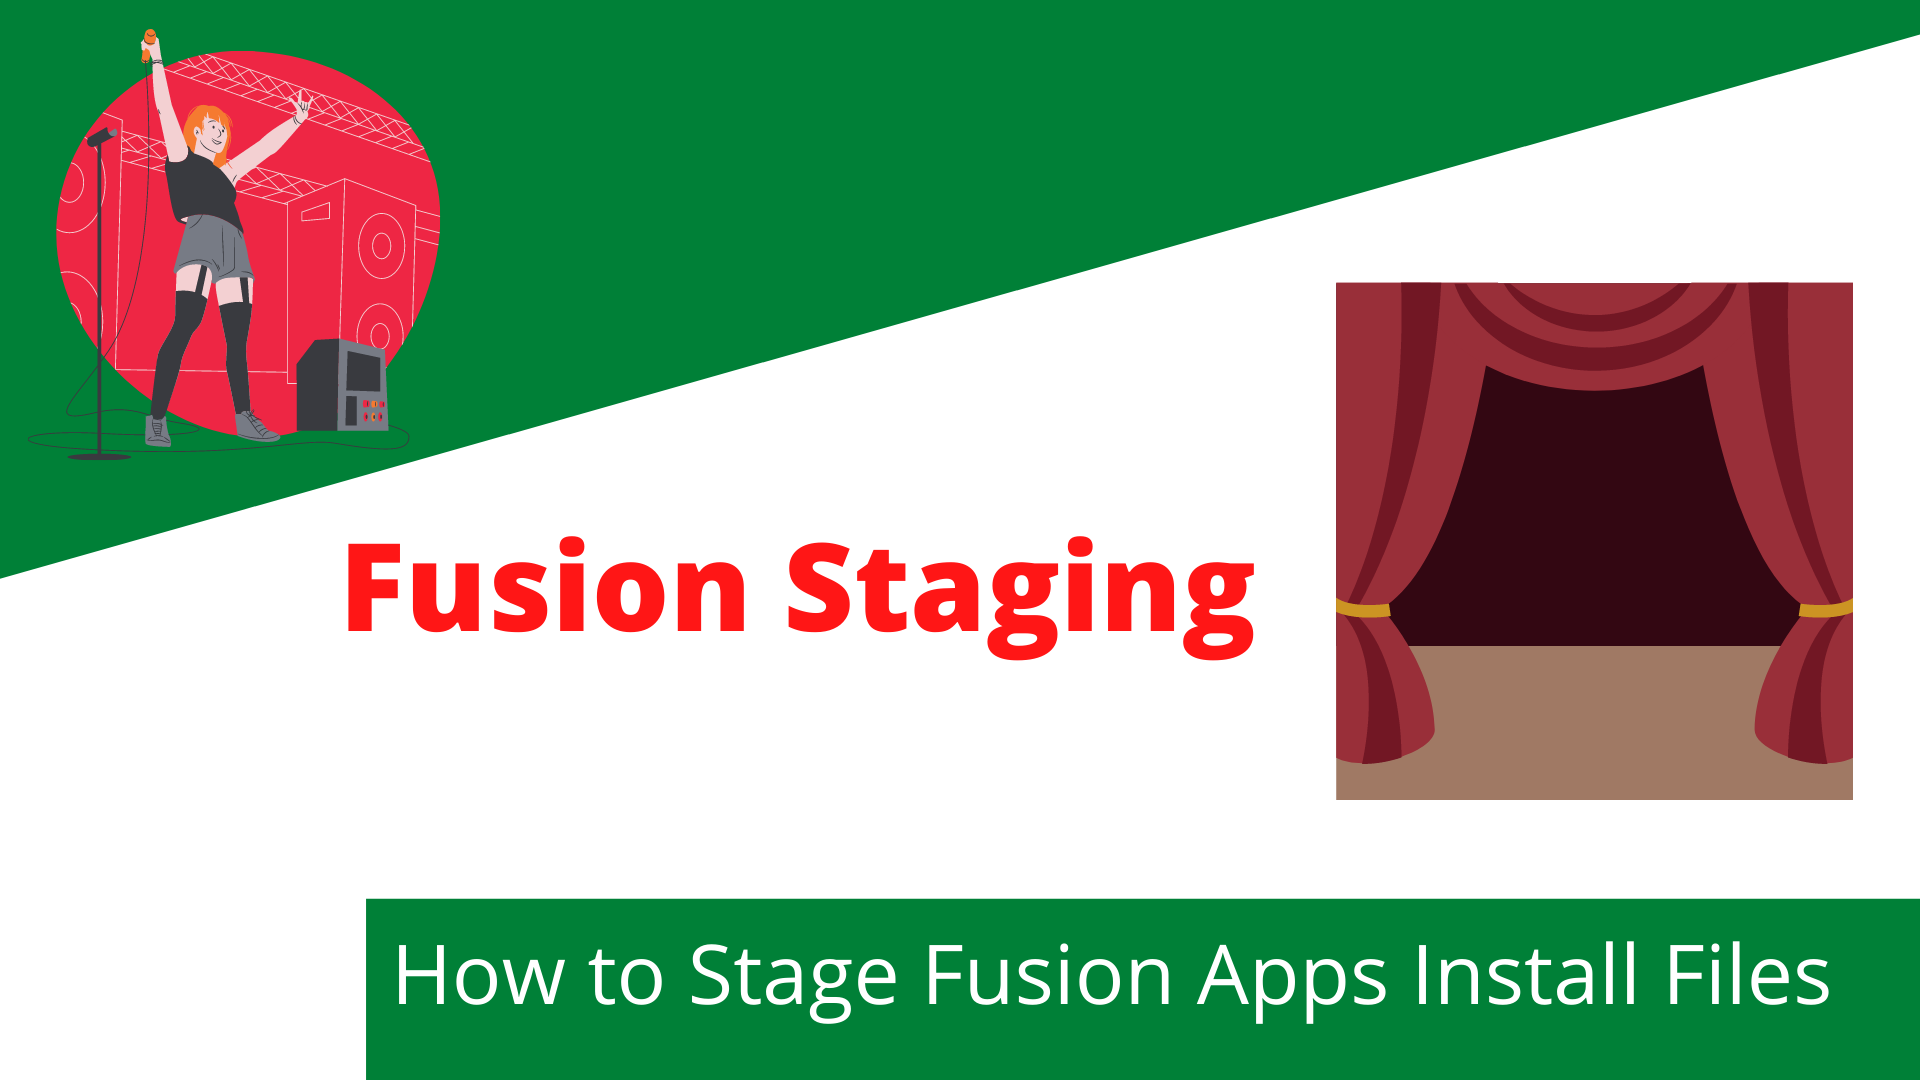 Fusion Applications Install Files Staging